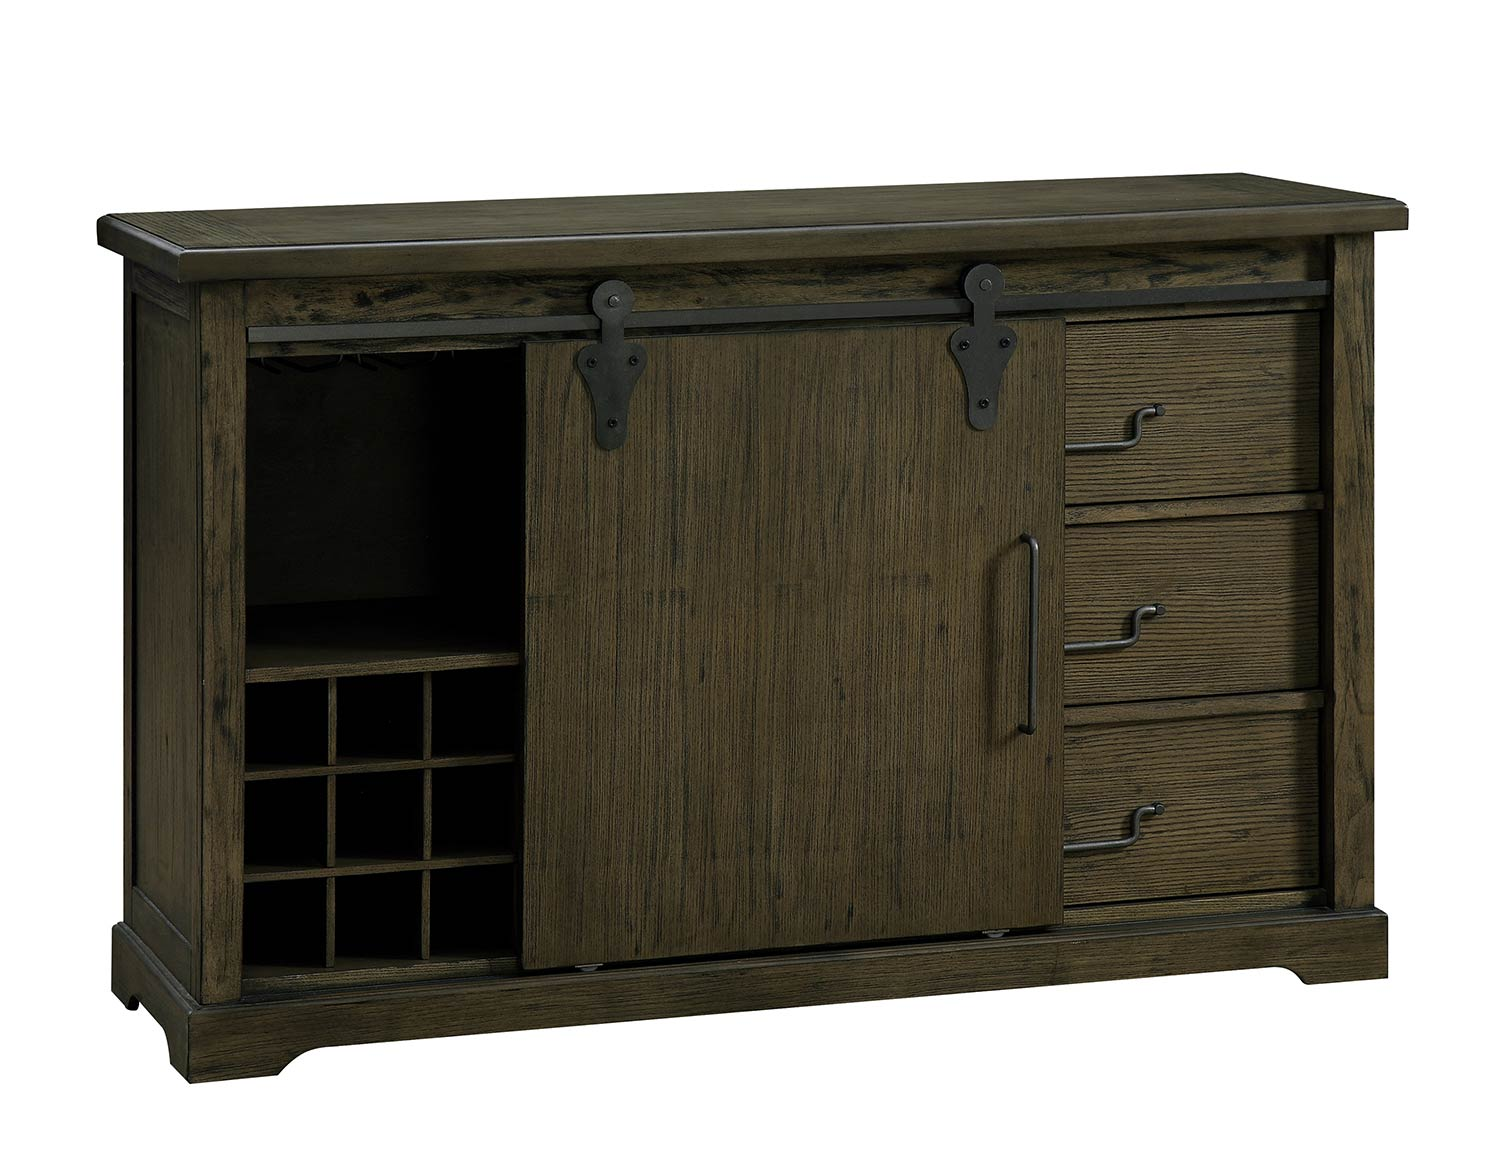 Homelegance Wheaten Barndoor Server - Natural